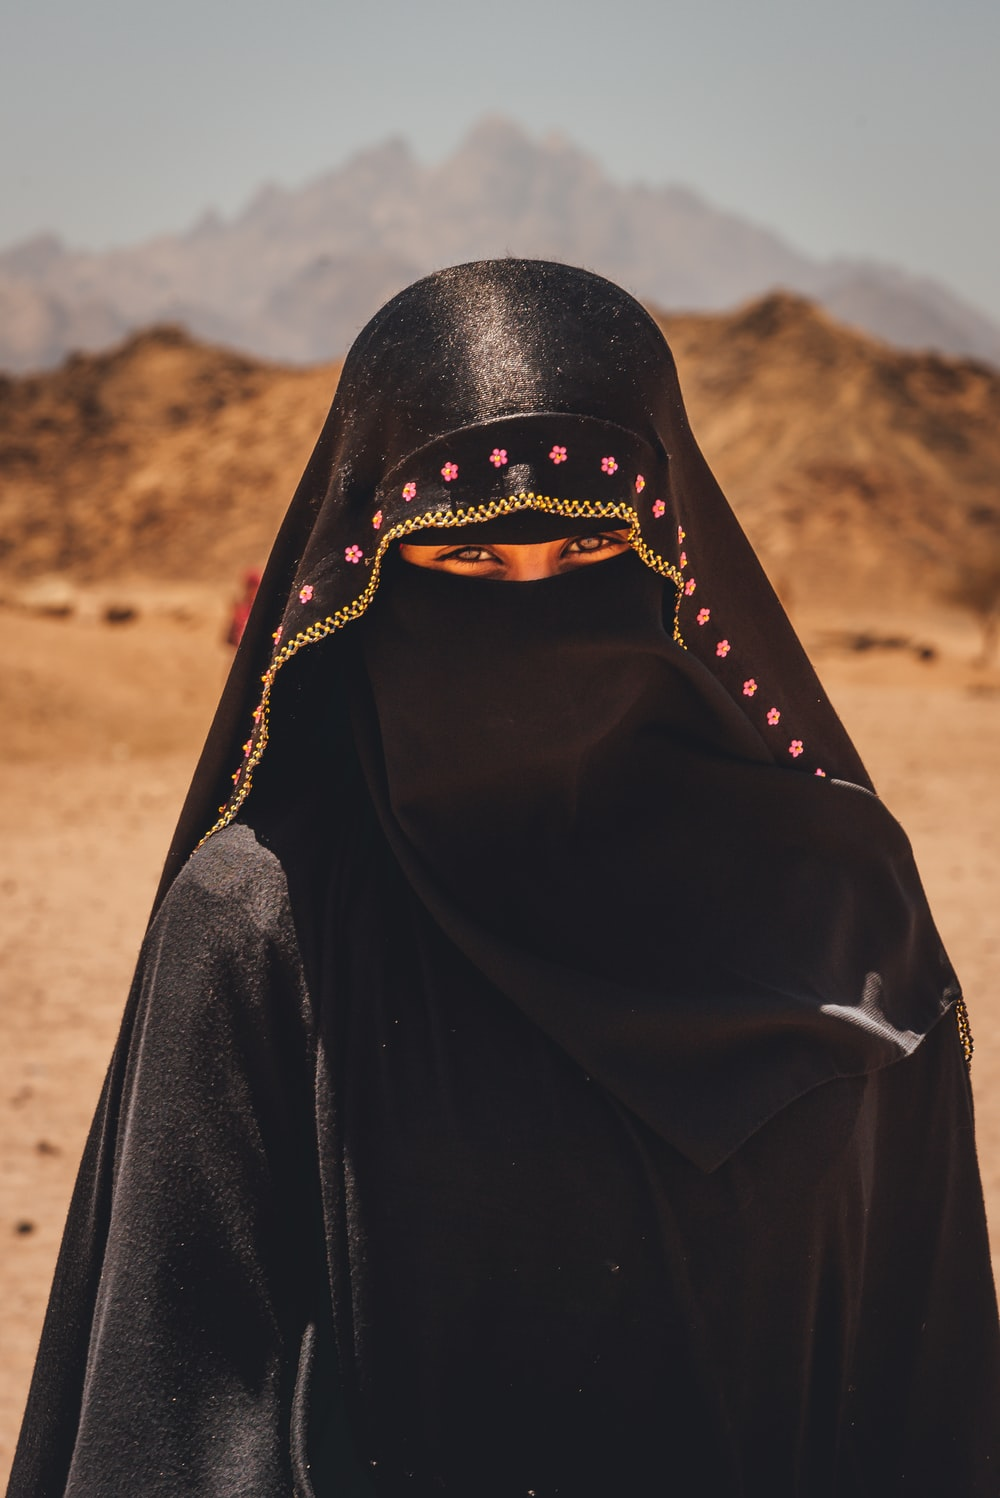 person in black hijab standing on brown field during daytime